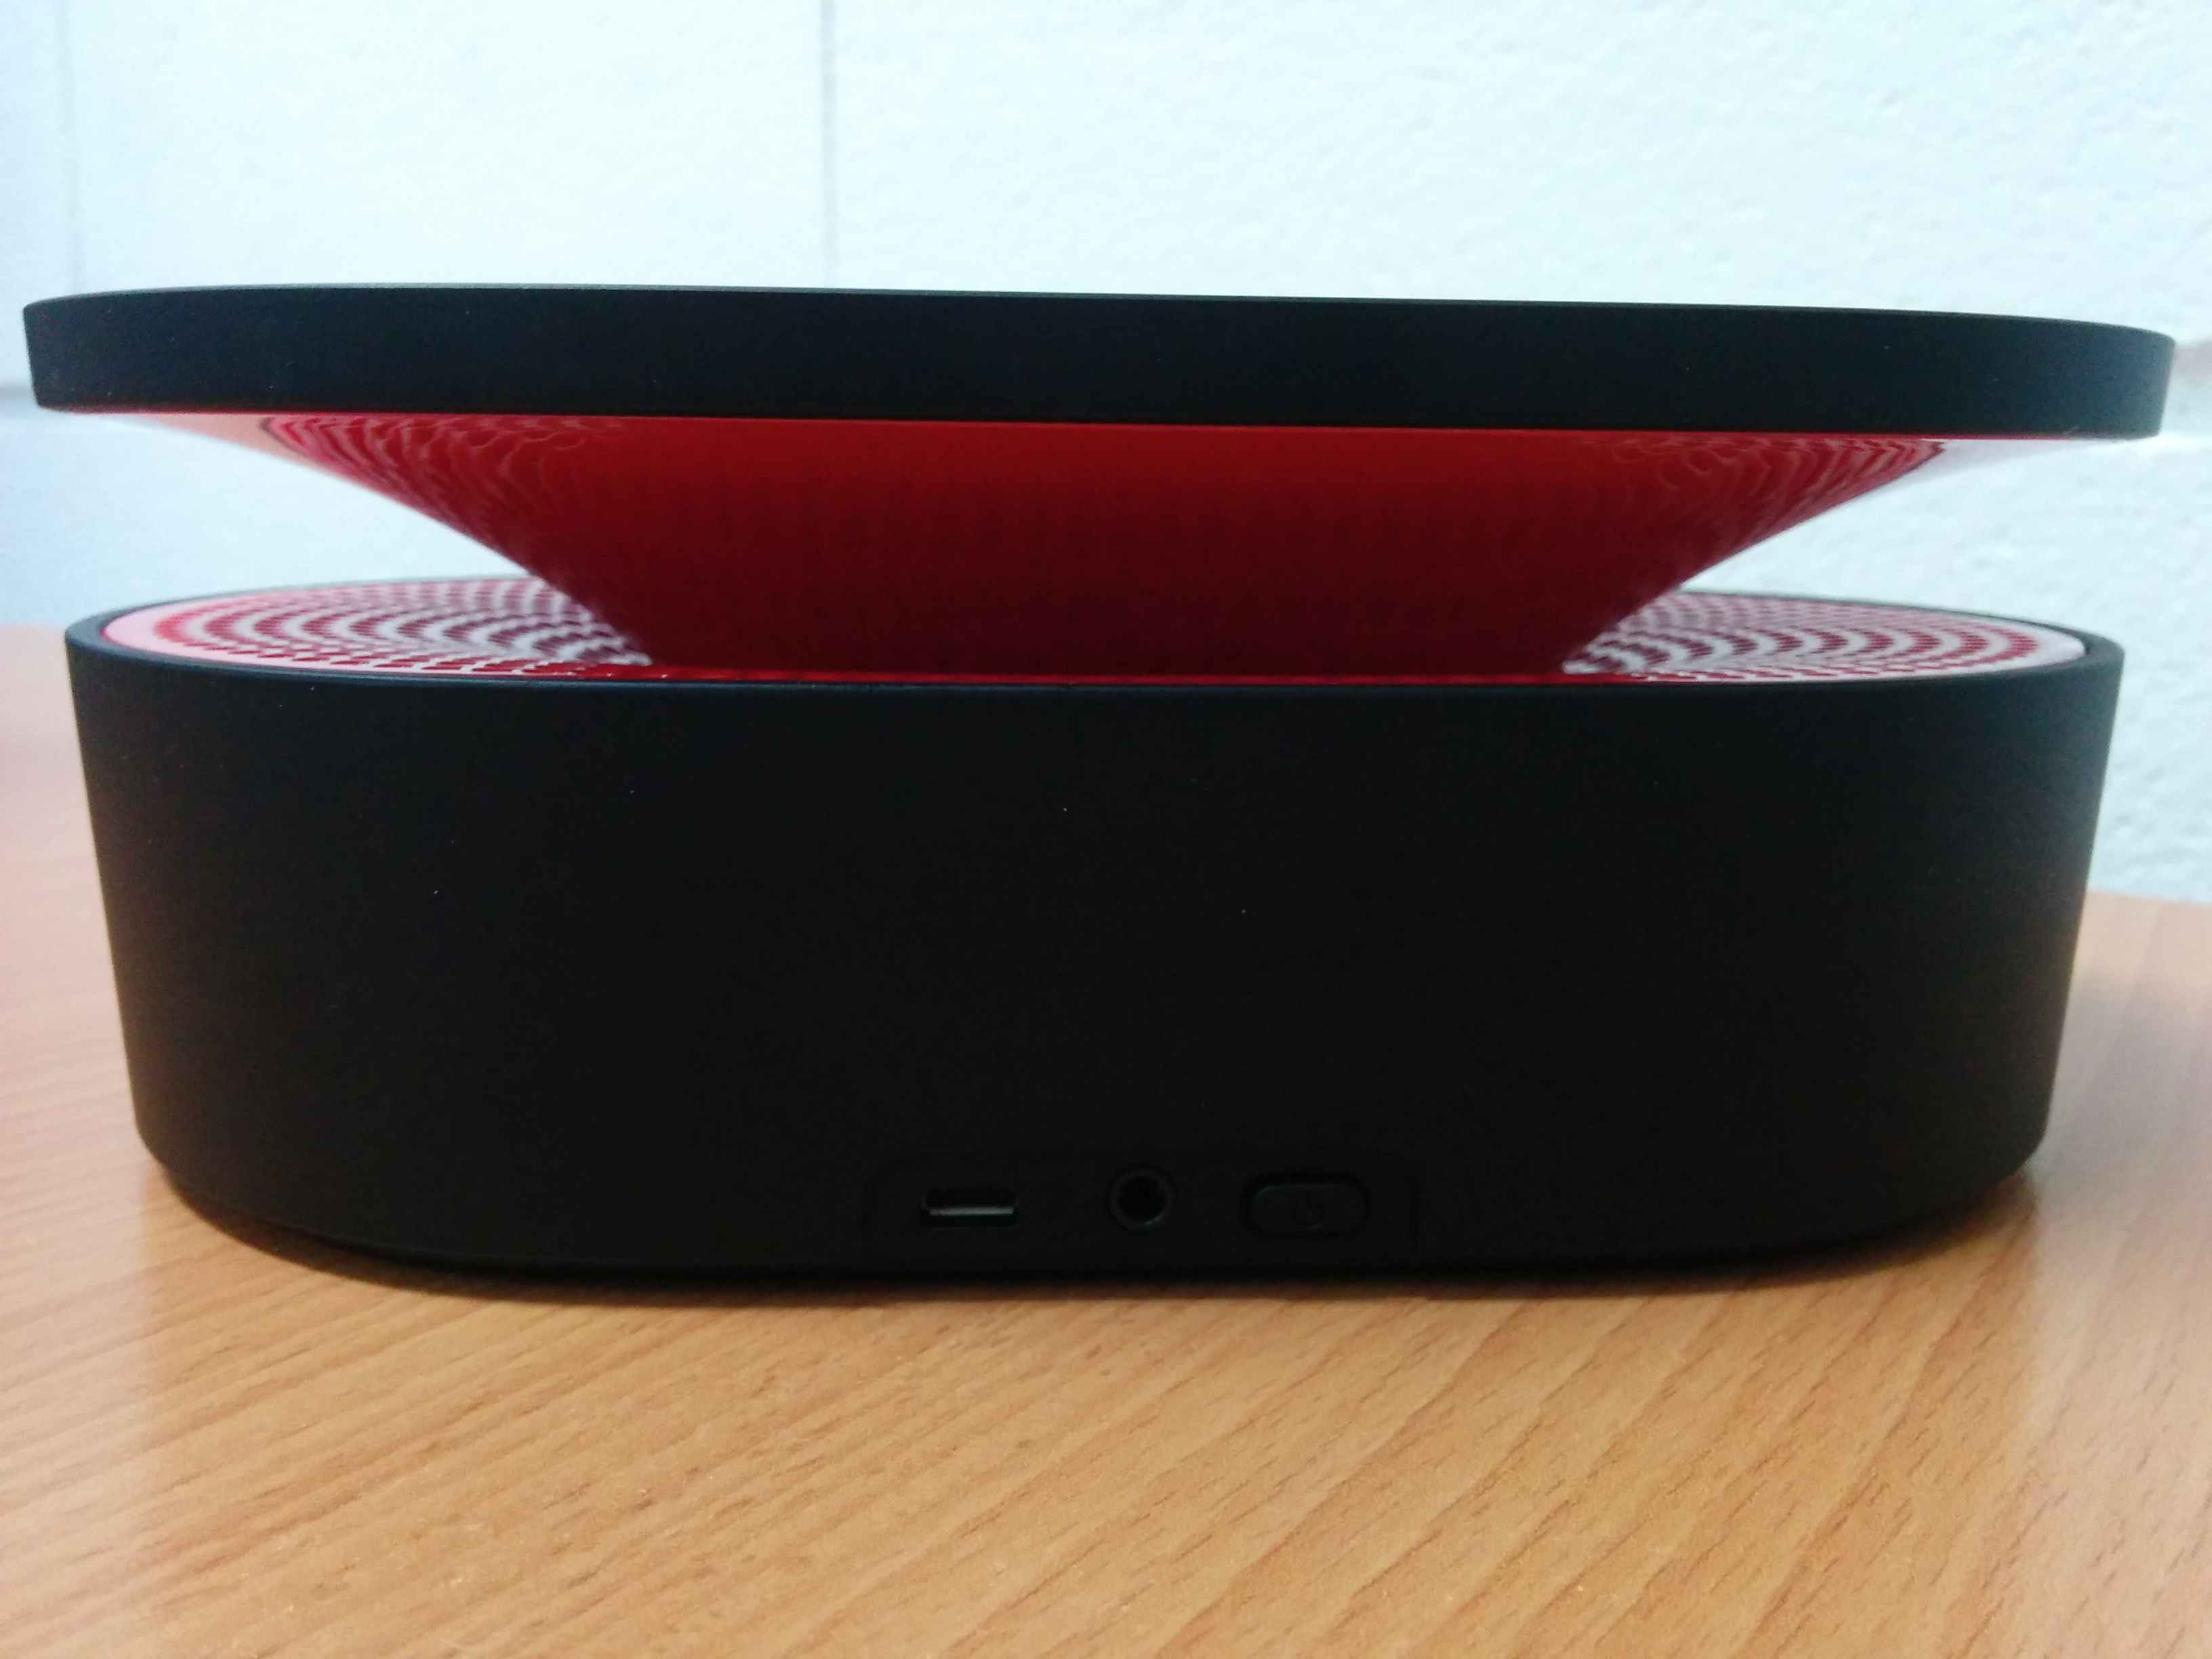 Oaxis Bento GD2507 Induction Speaker Review 4